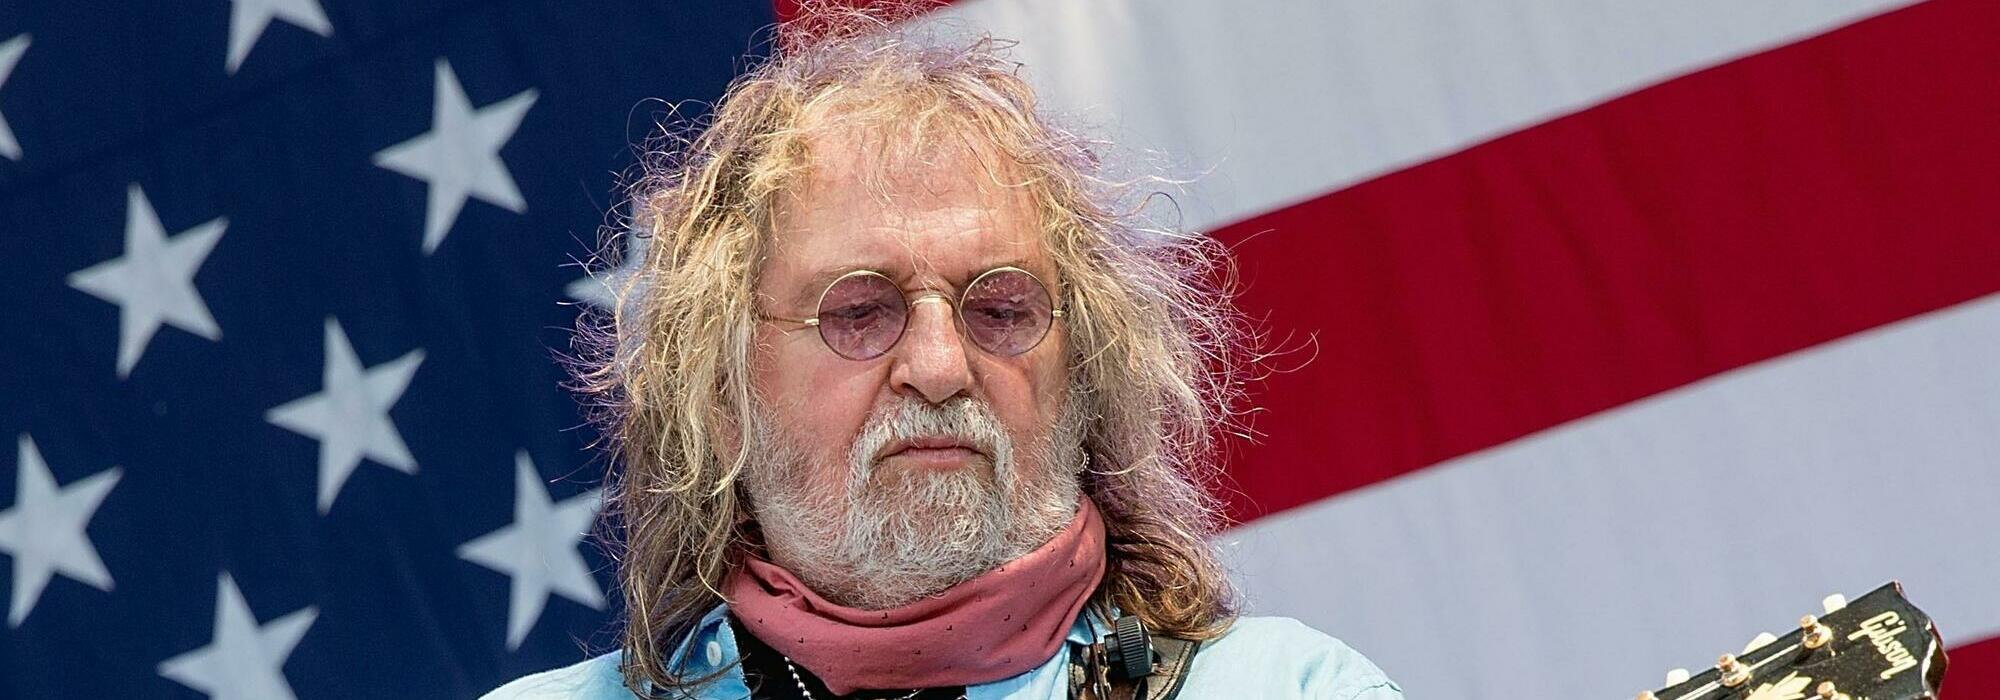 A Ray Wylie Hubbard live event